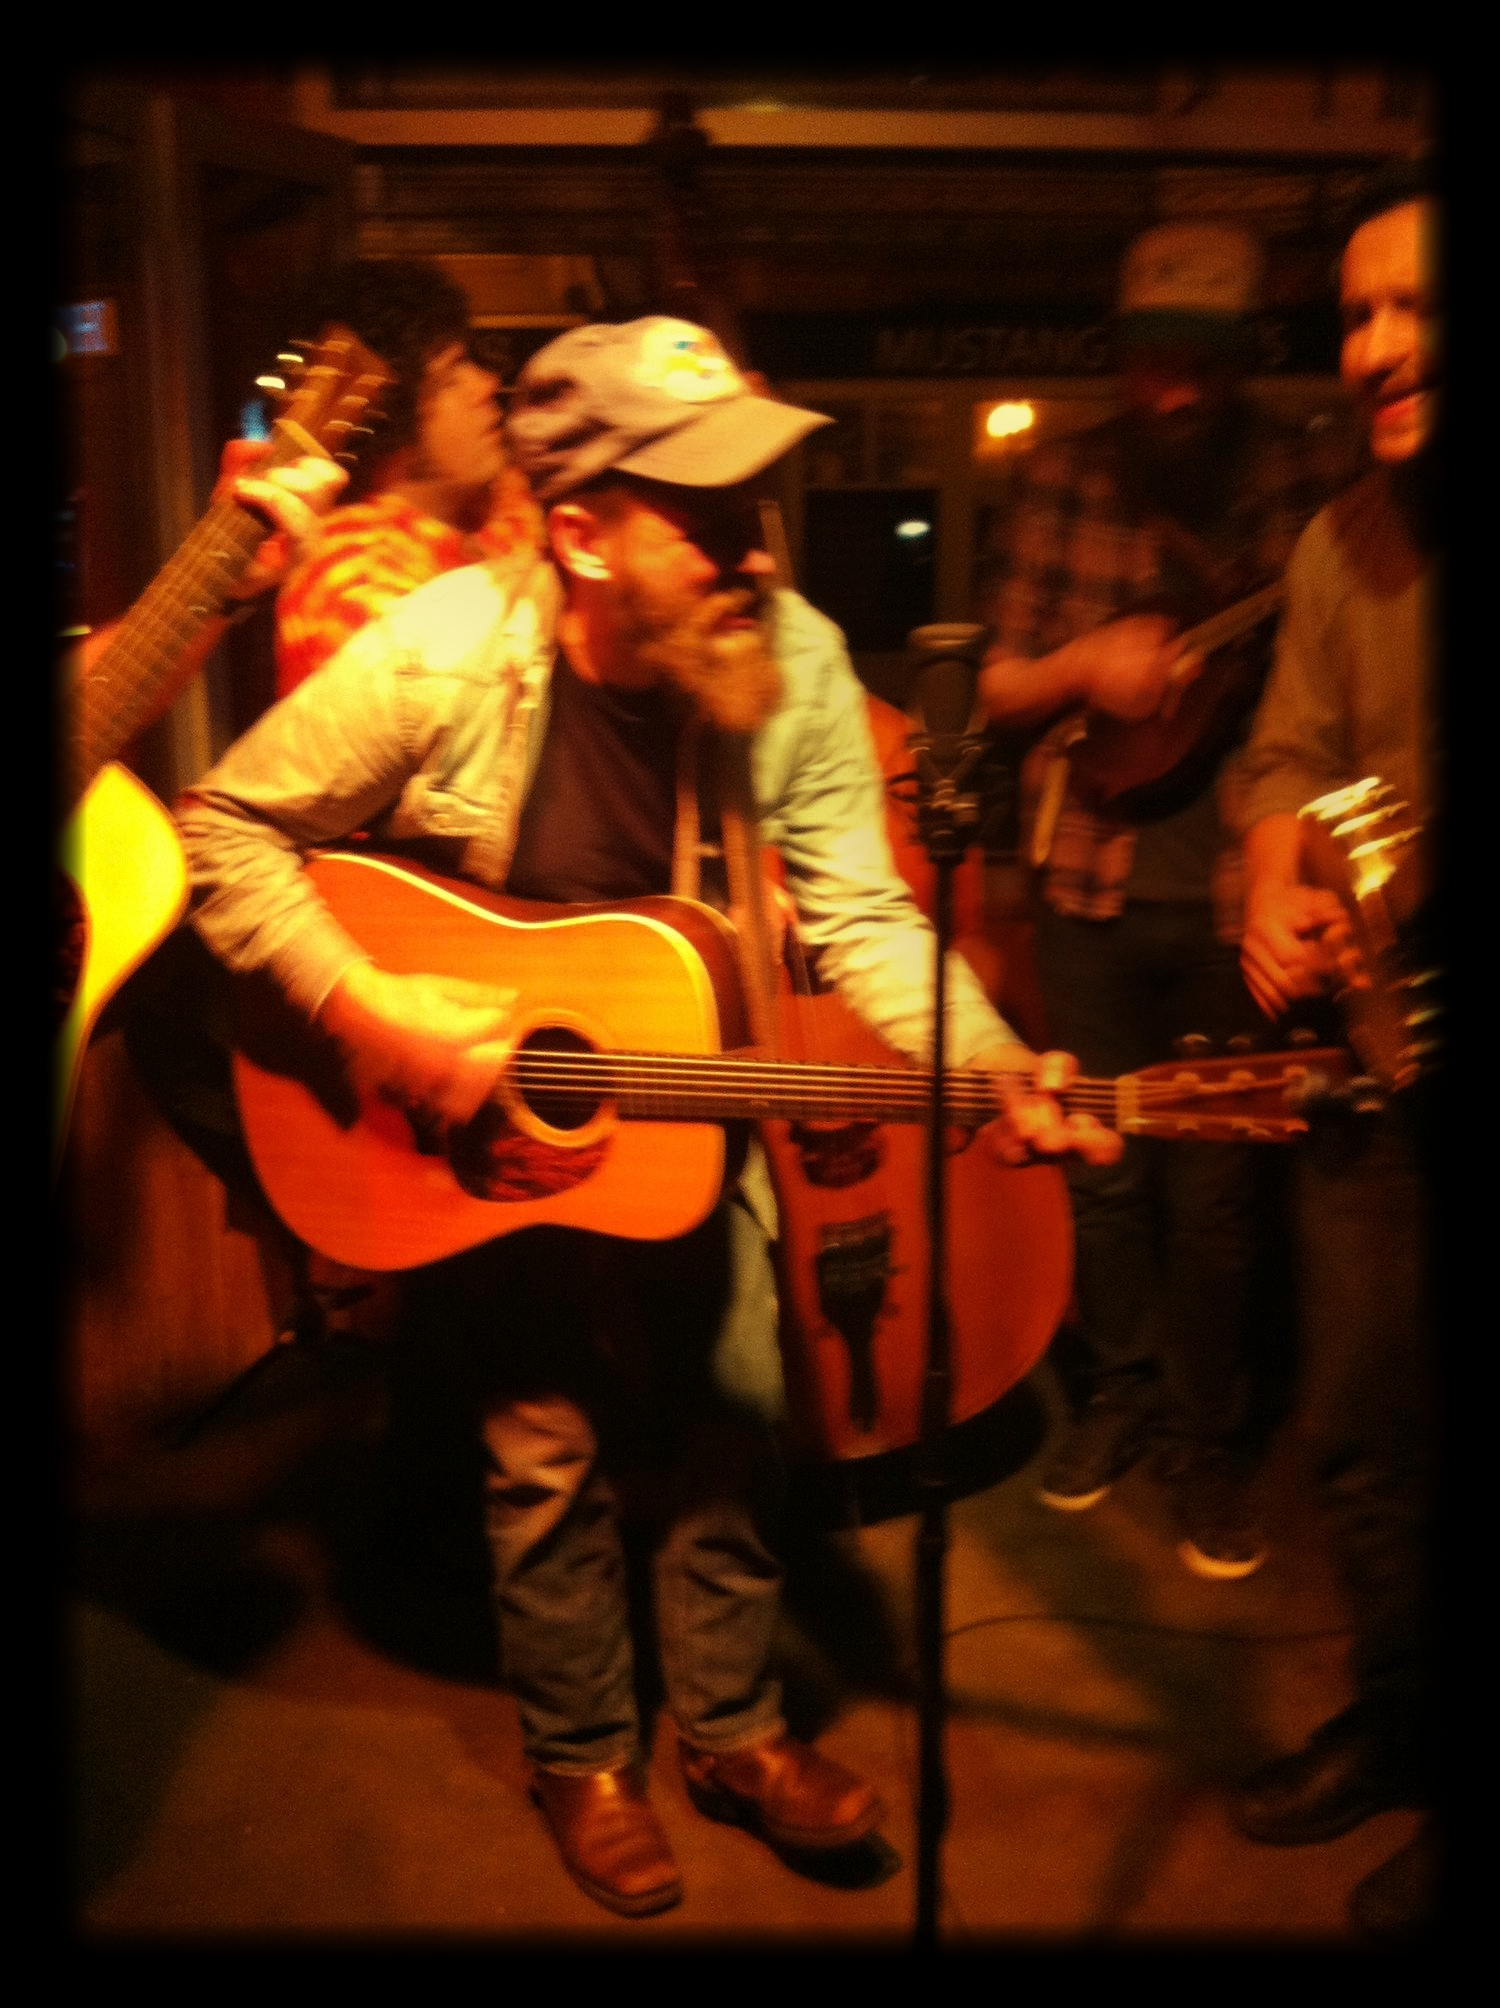 Matthew_Hornell_High_and_Lonesome_at_The_Rose_and_Thistle